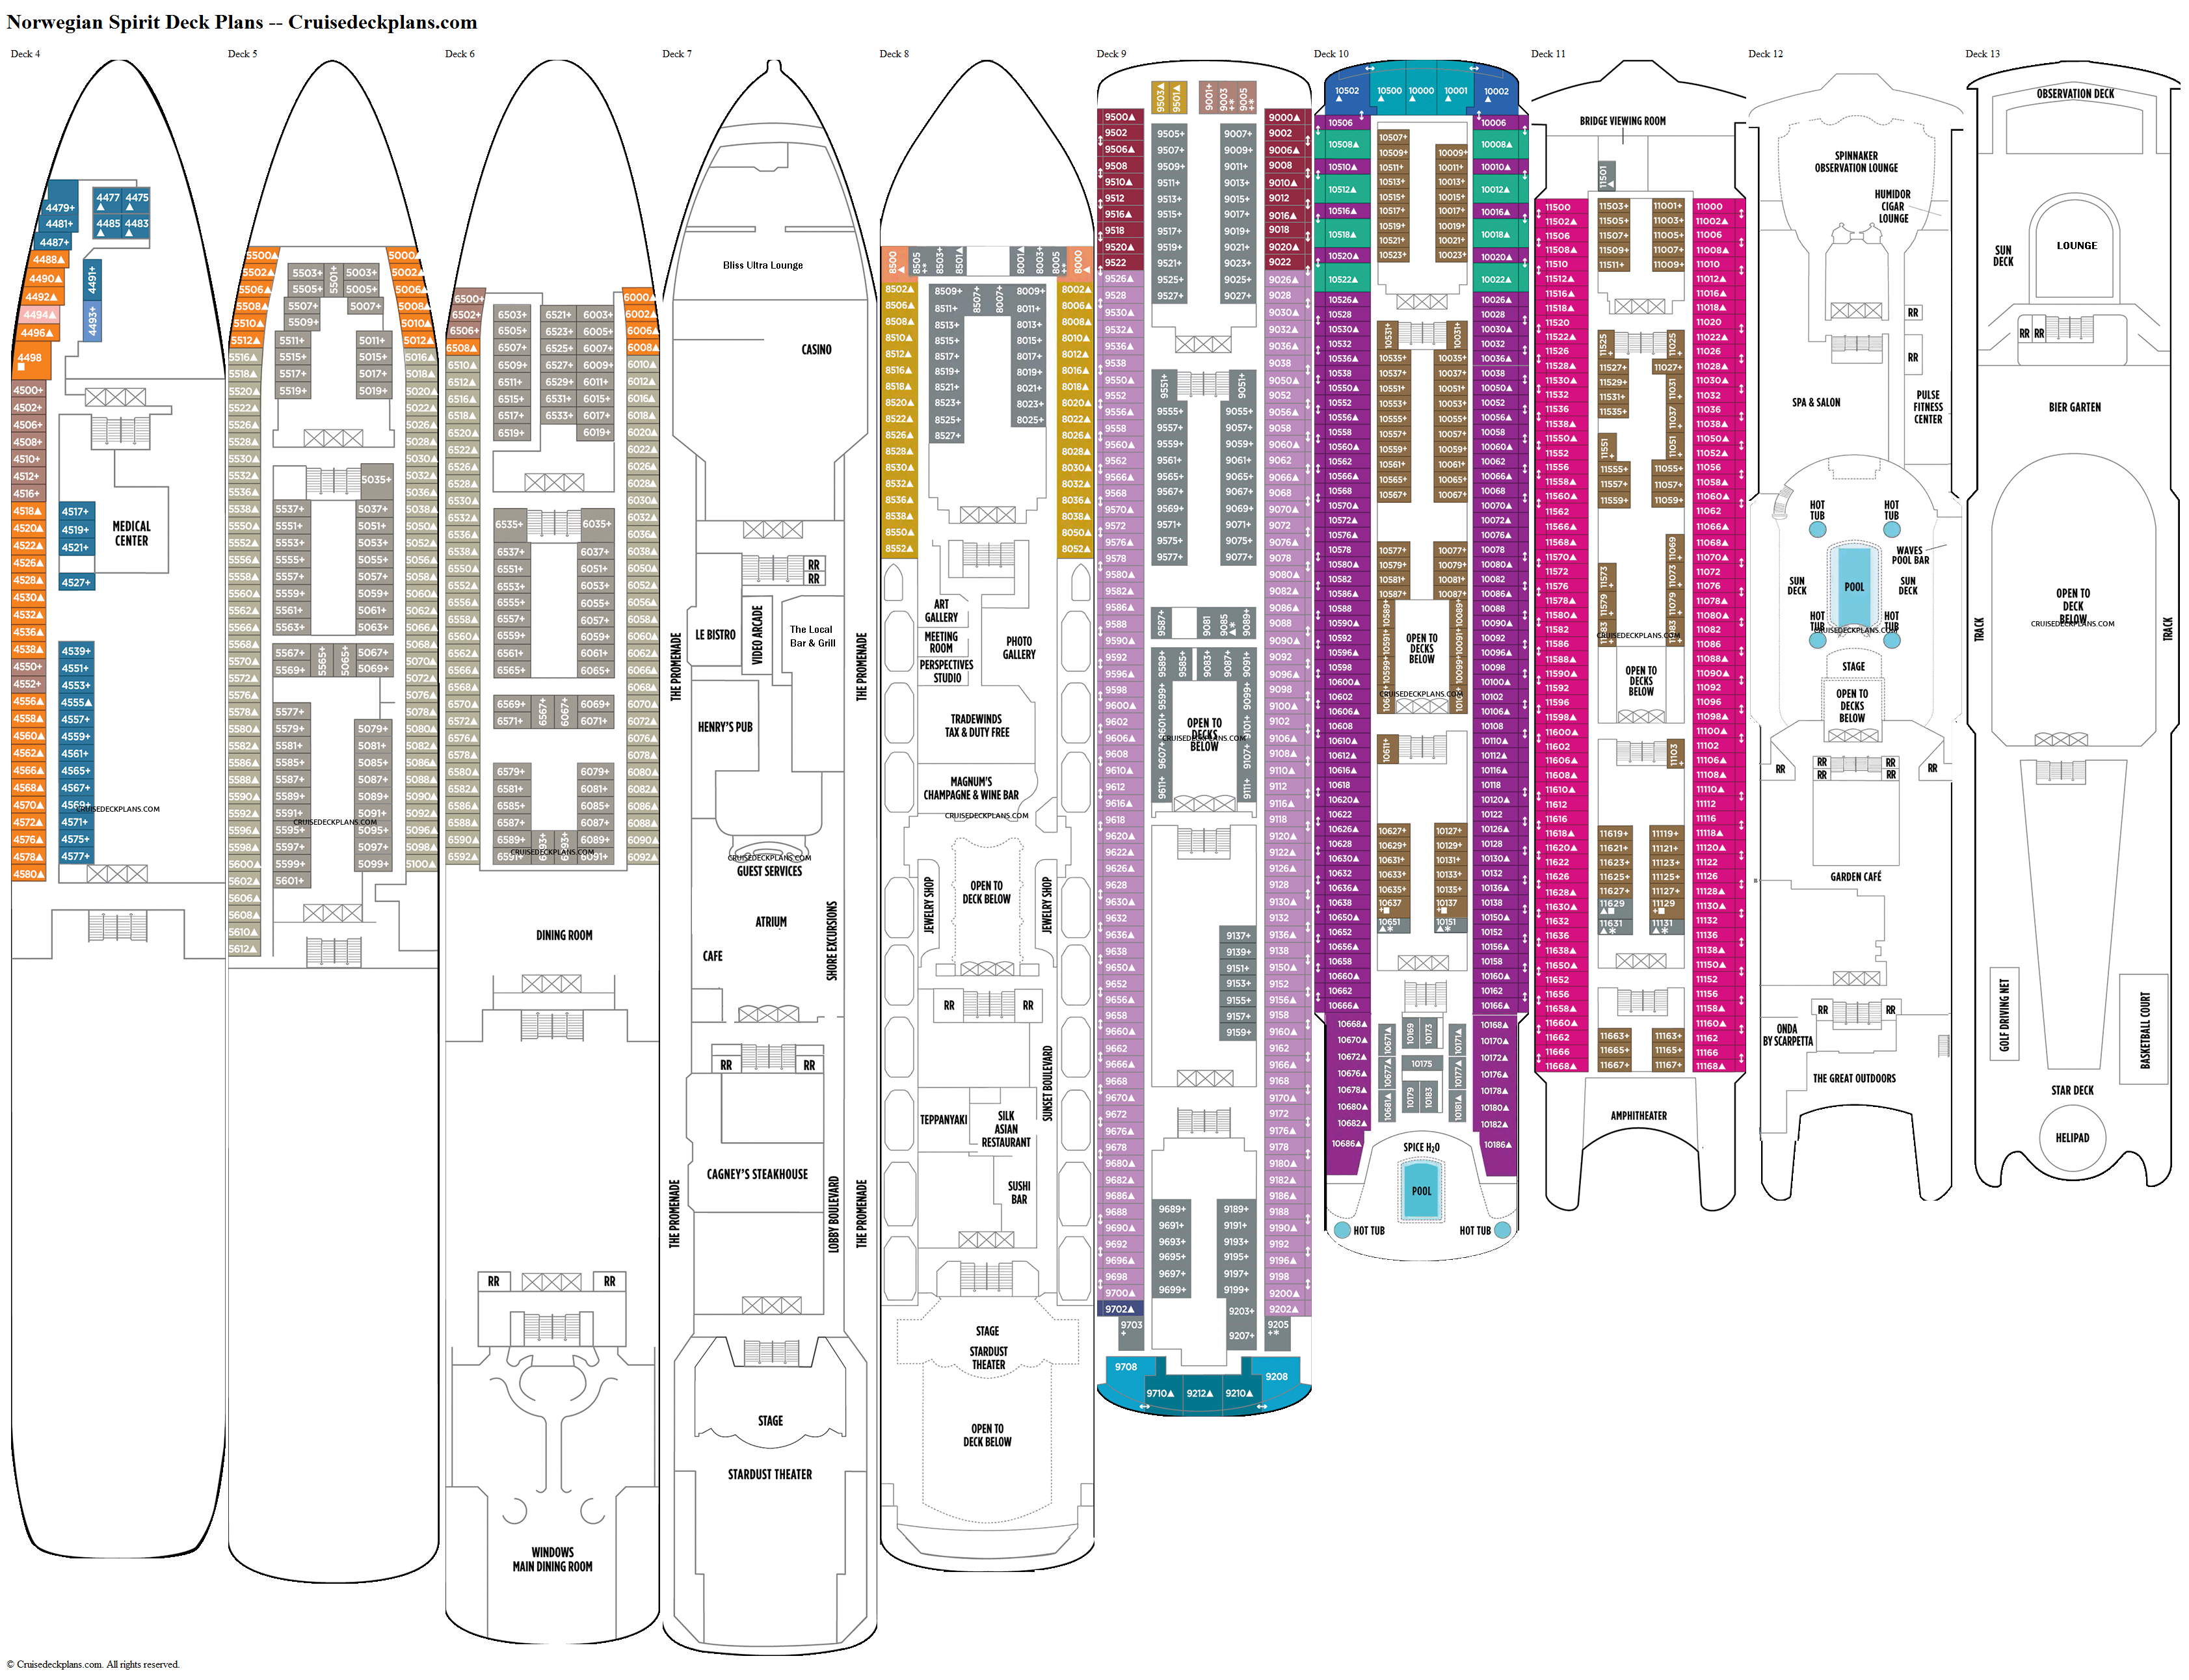 Norwegian Spirit deck plans image